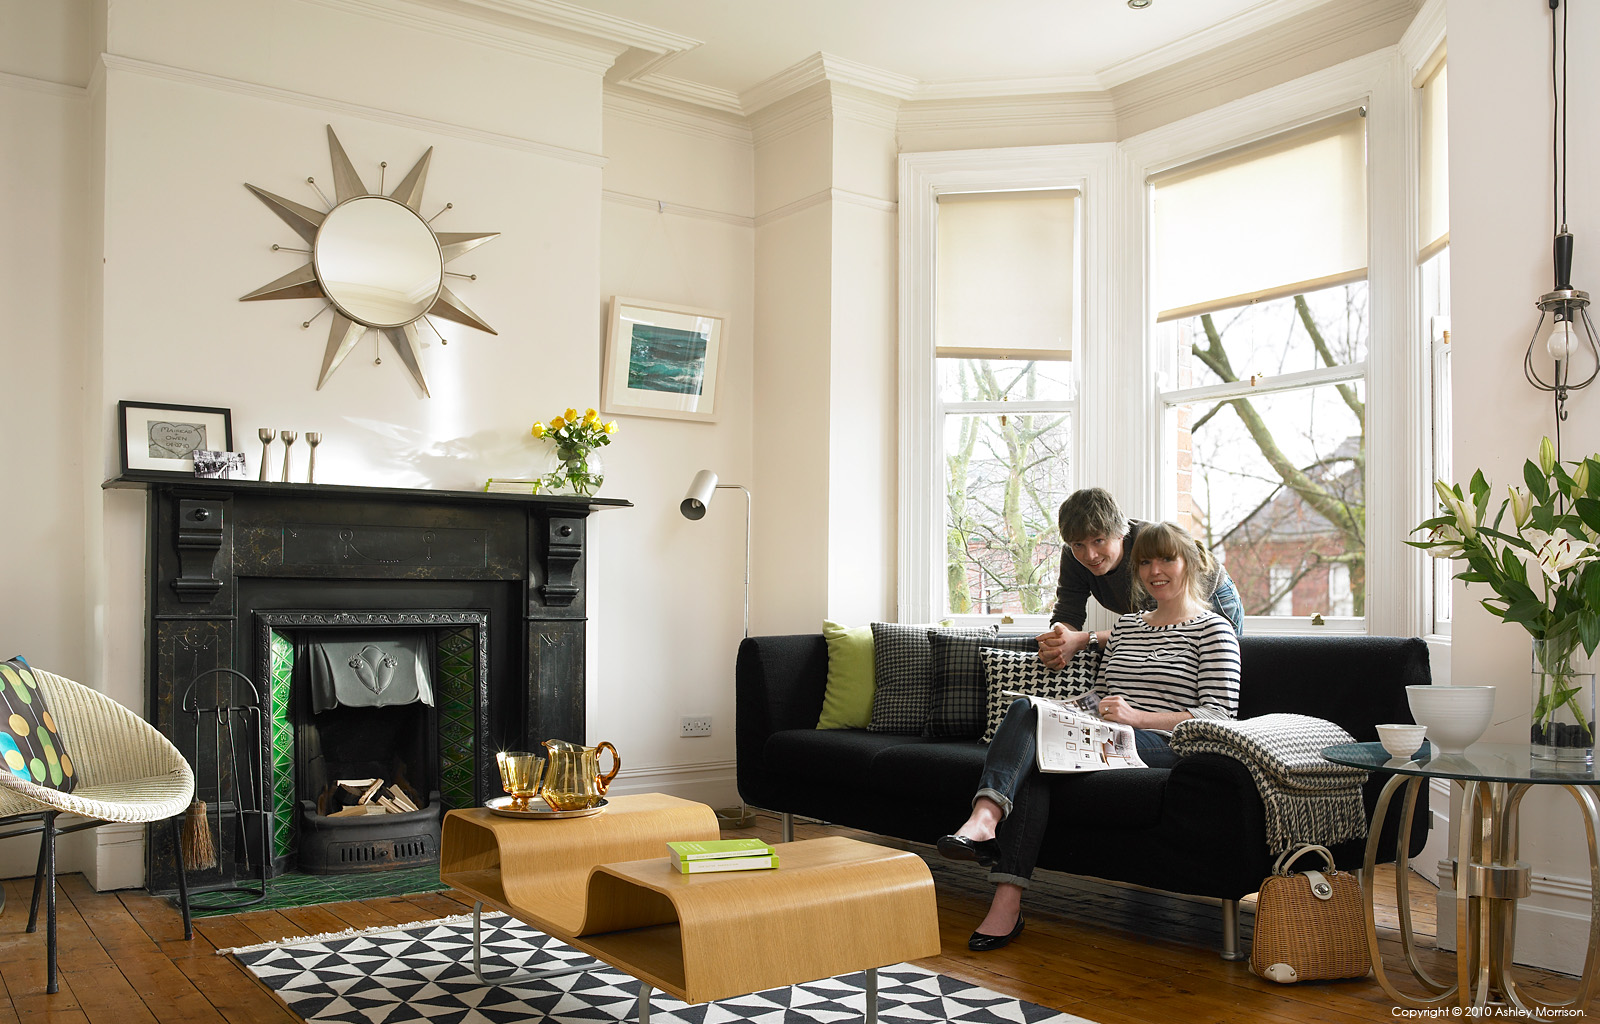 Mairead & Owen McIntyre in the upstairs sitting room of their Victorian terrace in the university area of Belfast by Ashley Morrison and Marie McMillen.